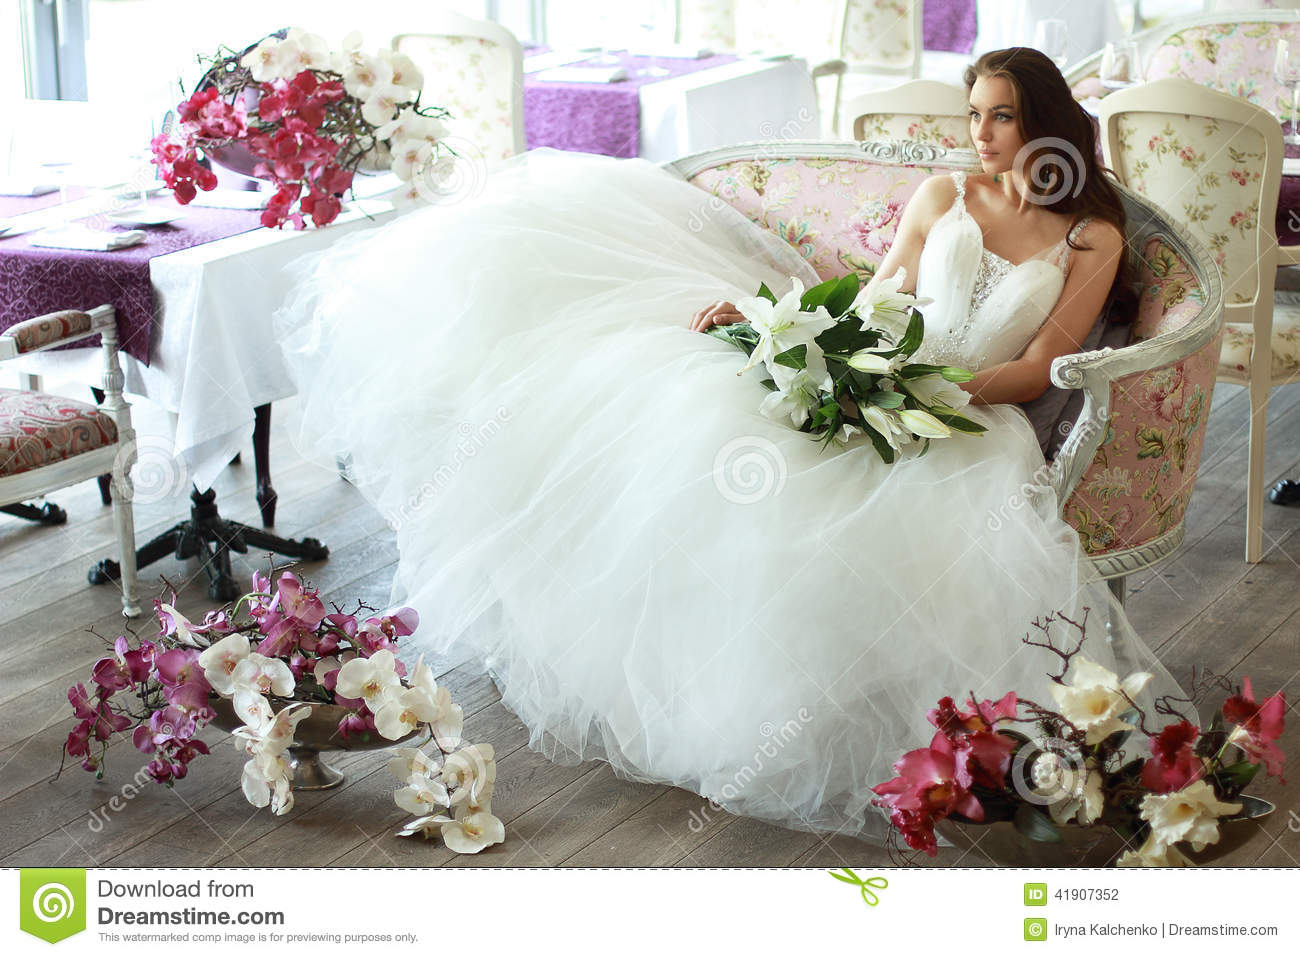 Download Beautiful Bride In A Magnificent White Wedding Dress Of Tulle With A Corset Sitting On The Sofa With Bouquet Lily And Orchid Stock Photo - Image of flowers, chiffon: 41907352